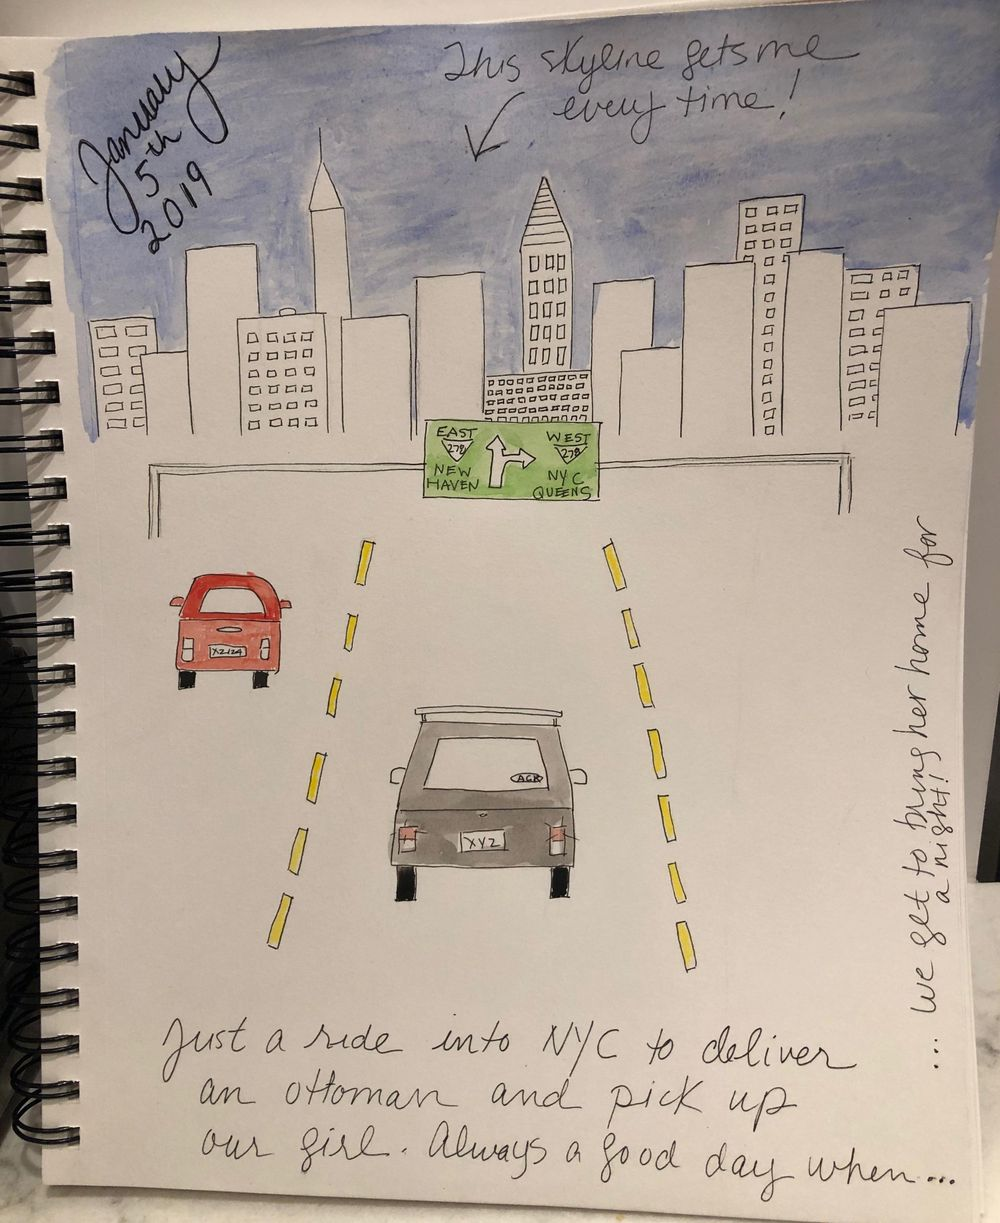 Driving to NYC - my Hero project - image 1 - student project